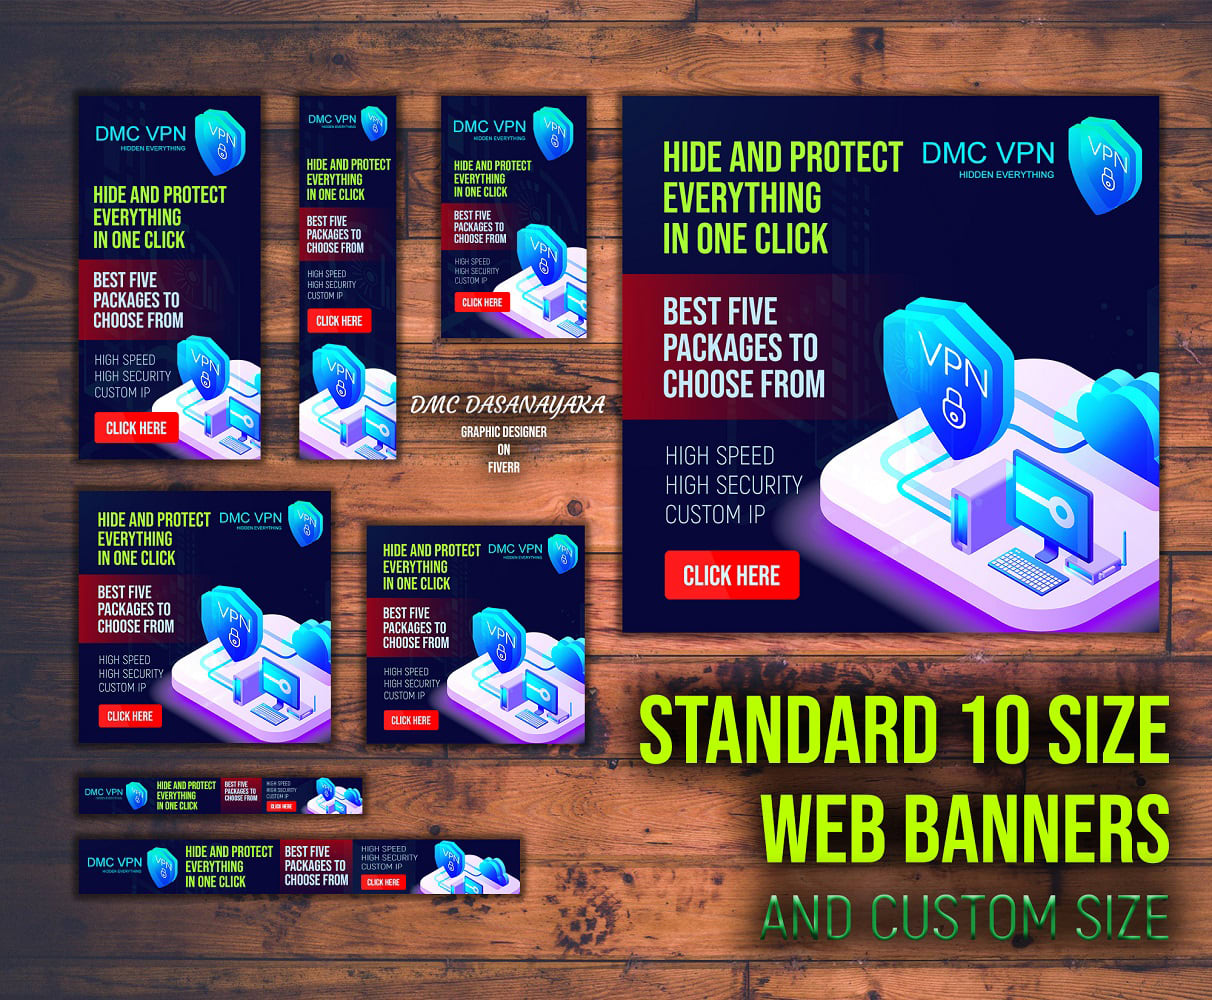 I will design creative and professional banner ads